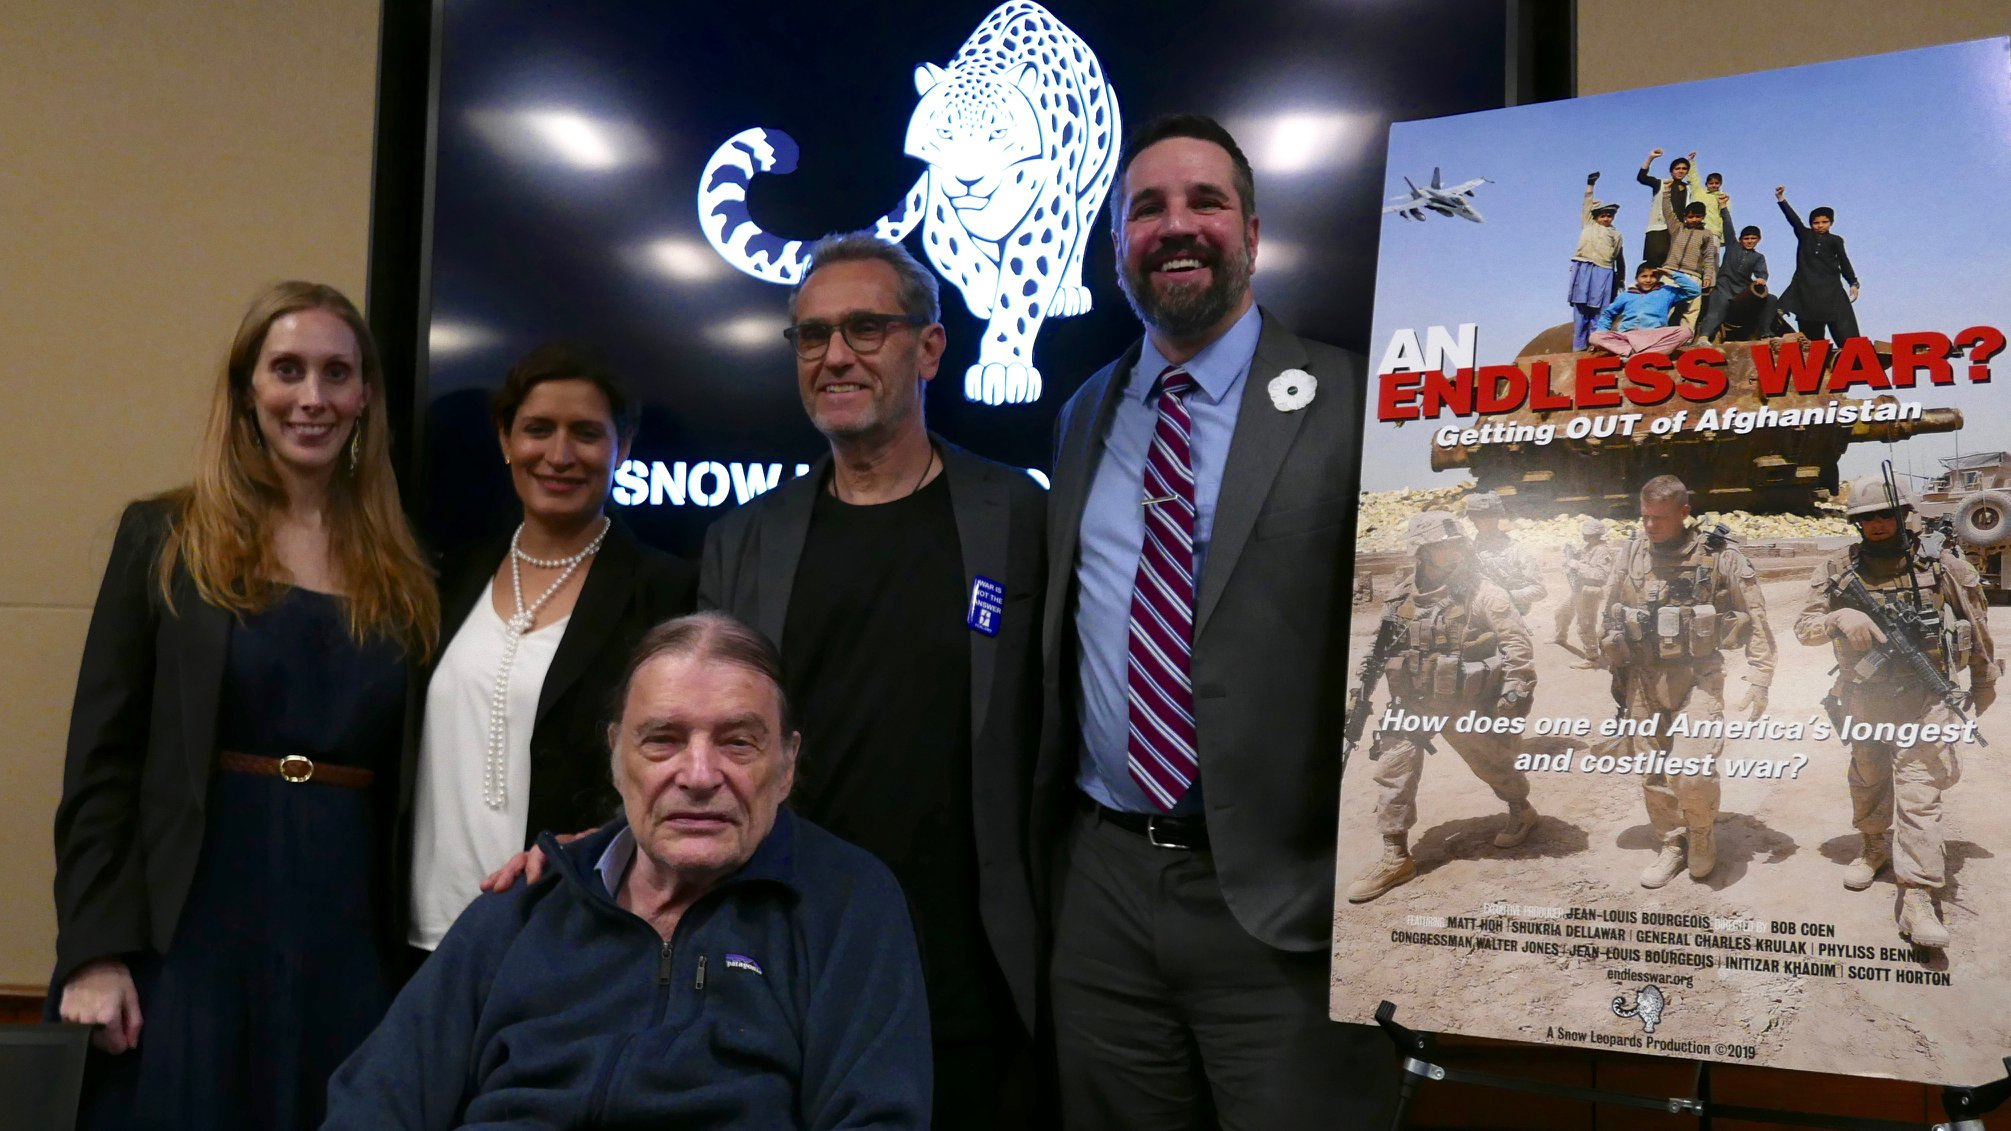 Image of Matt Hoh and others in front of an image from the film Endless War